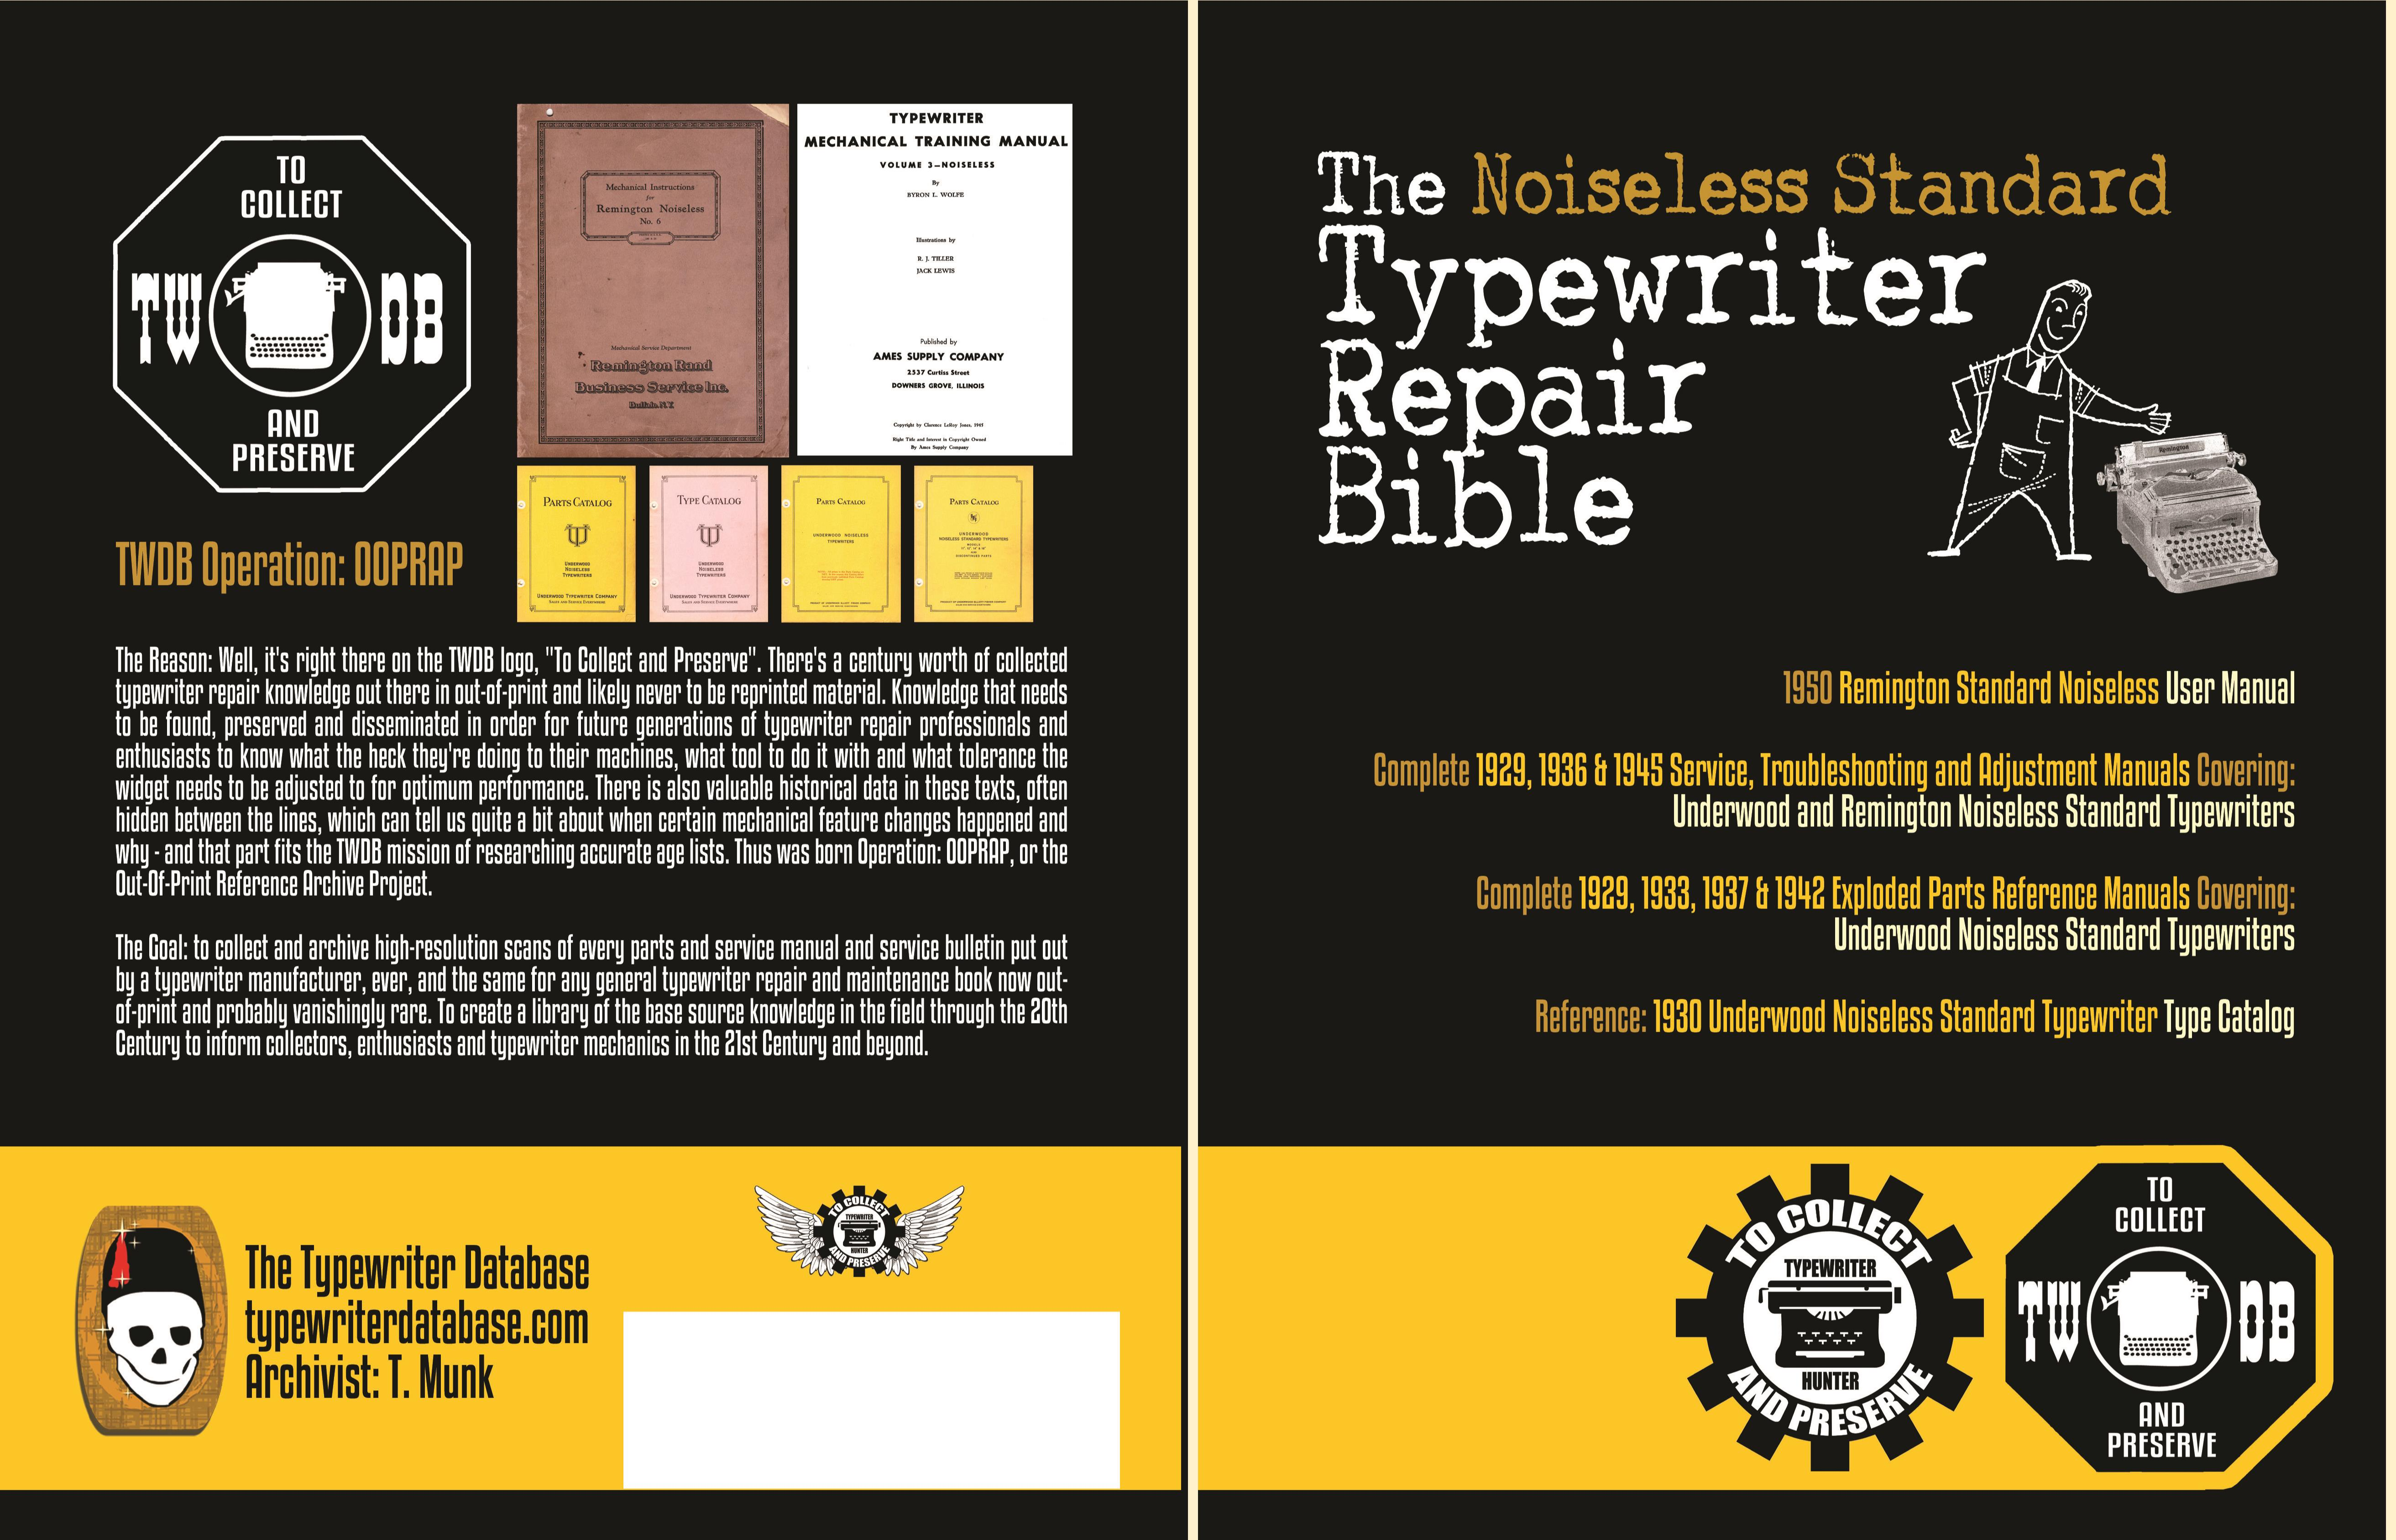 The Noiseless Standard Typewriter Repair Bible cover image